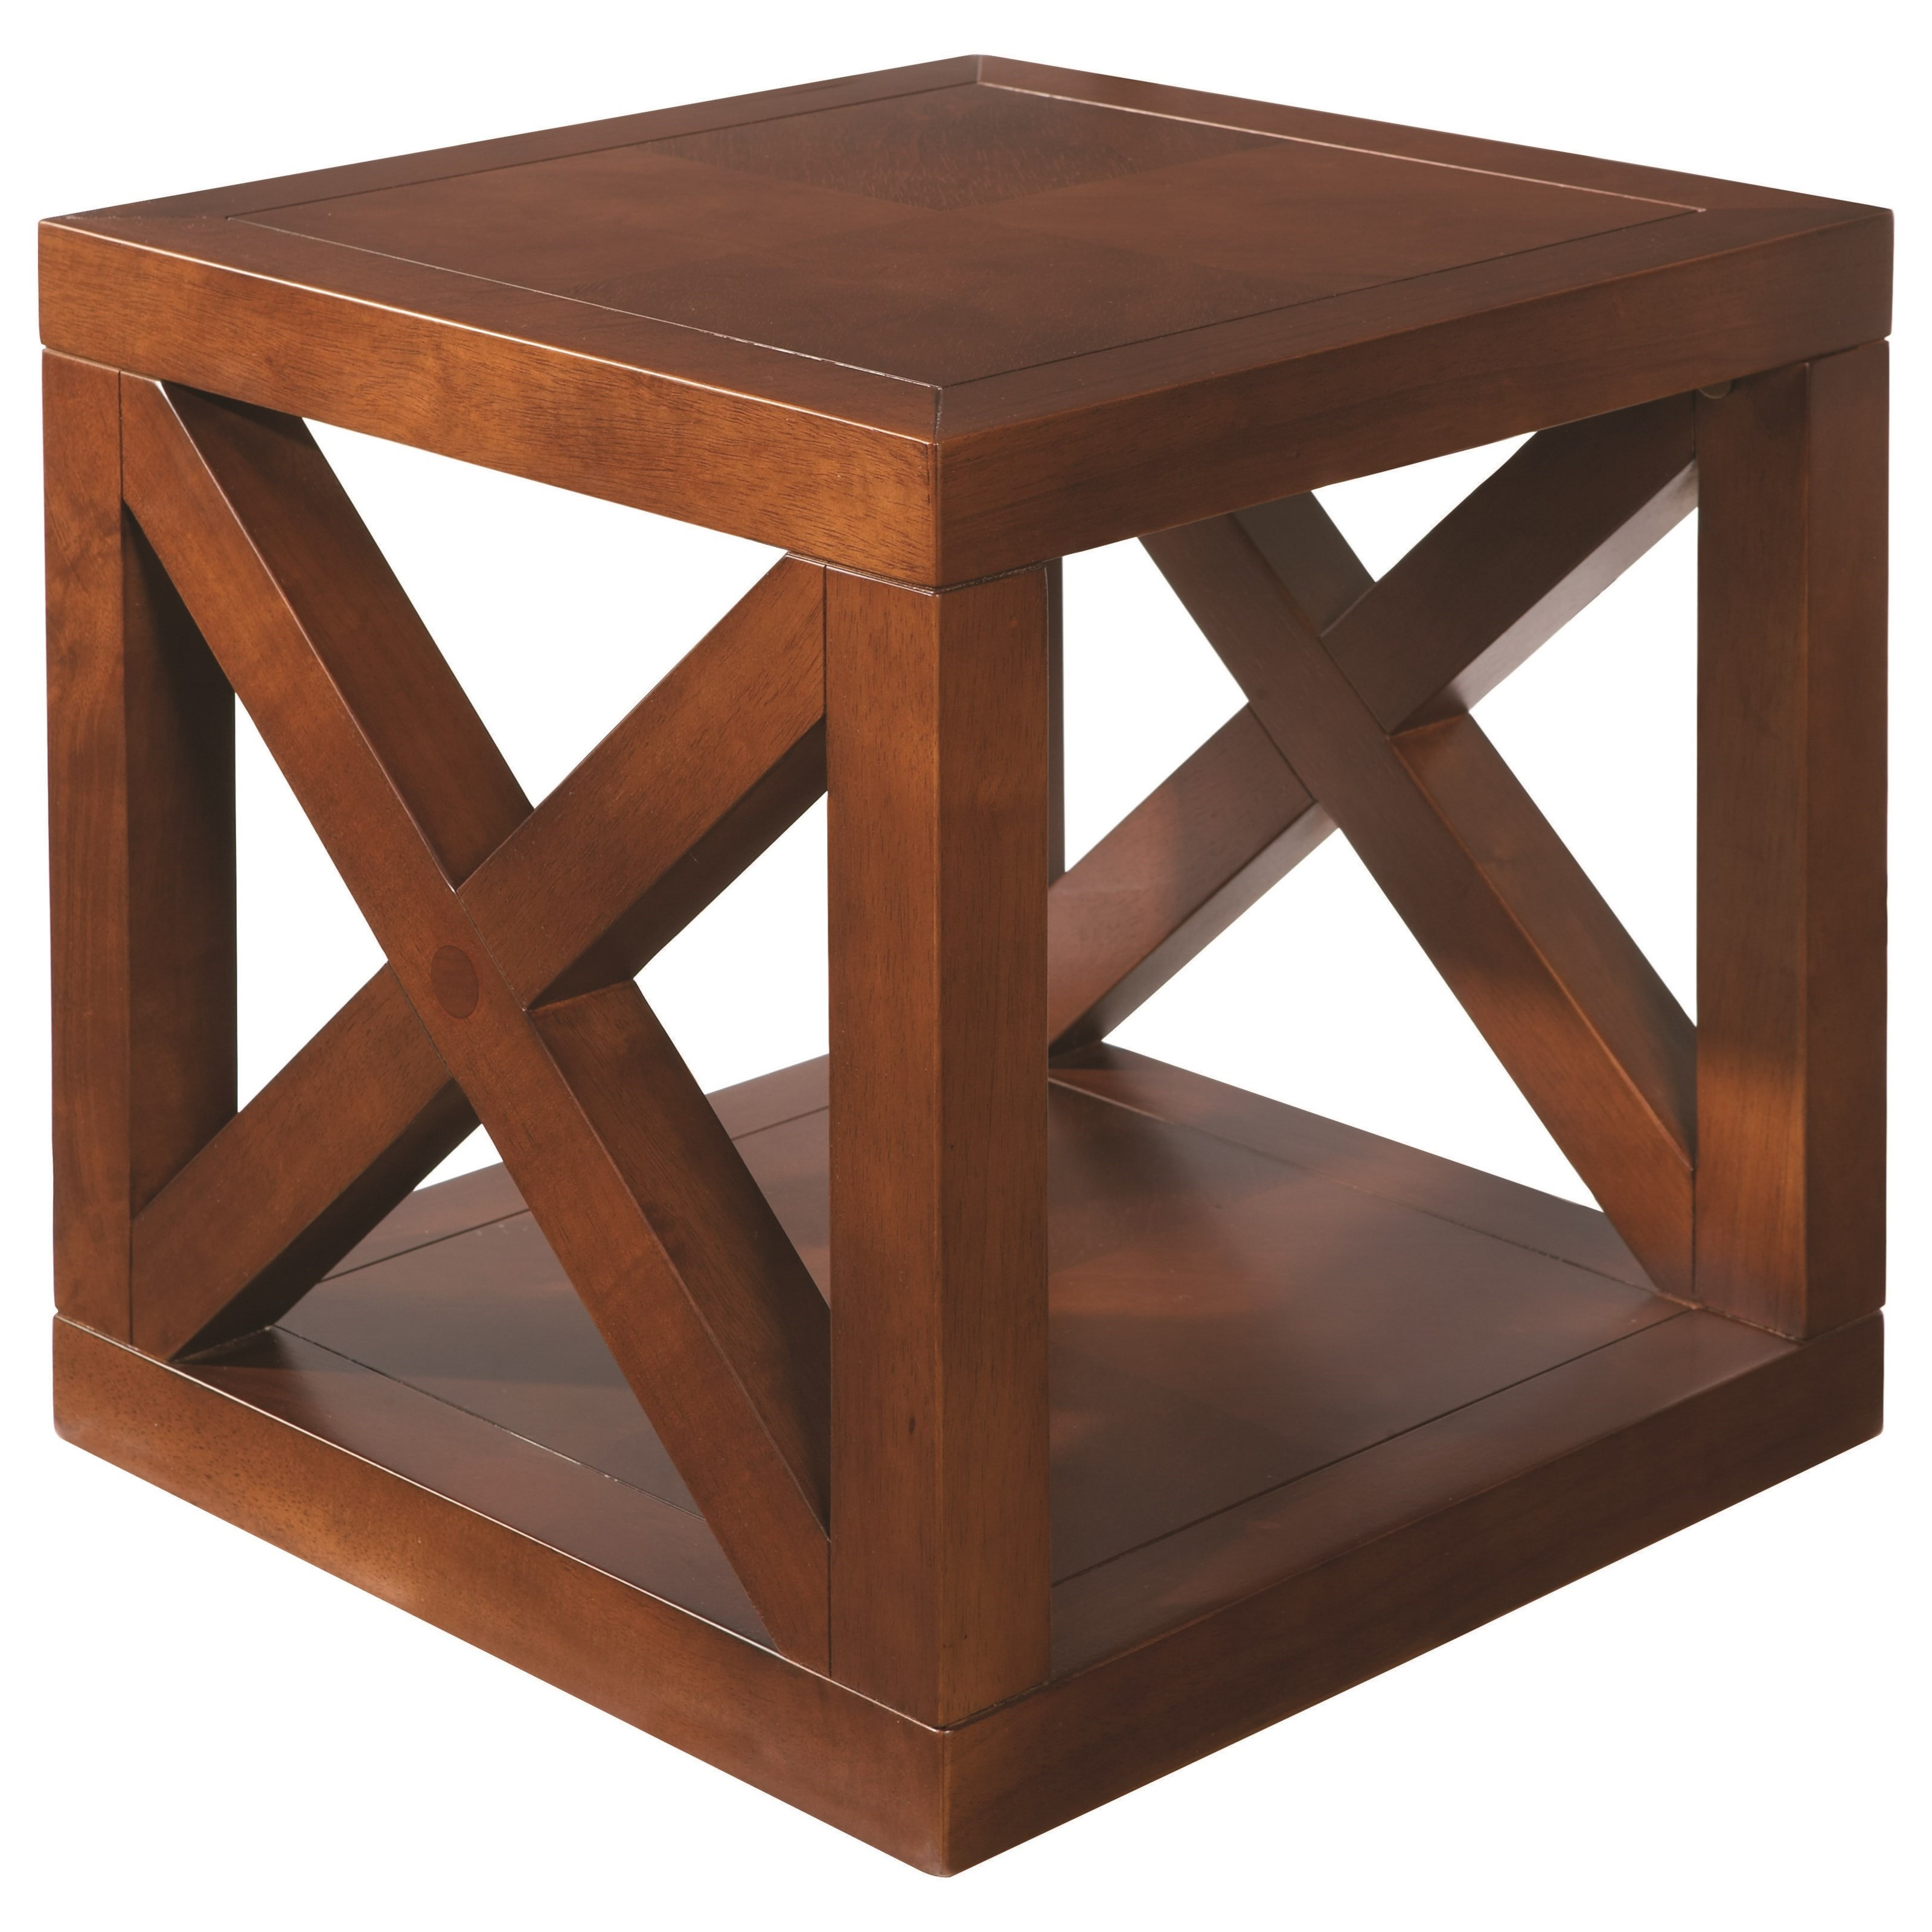 Axis Cube Table by Bassett at VanDrie Home Furnishings